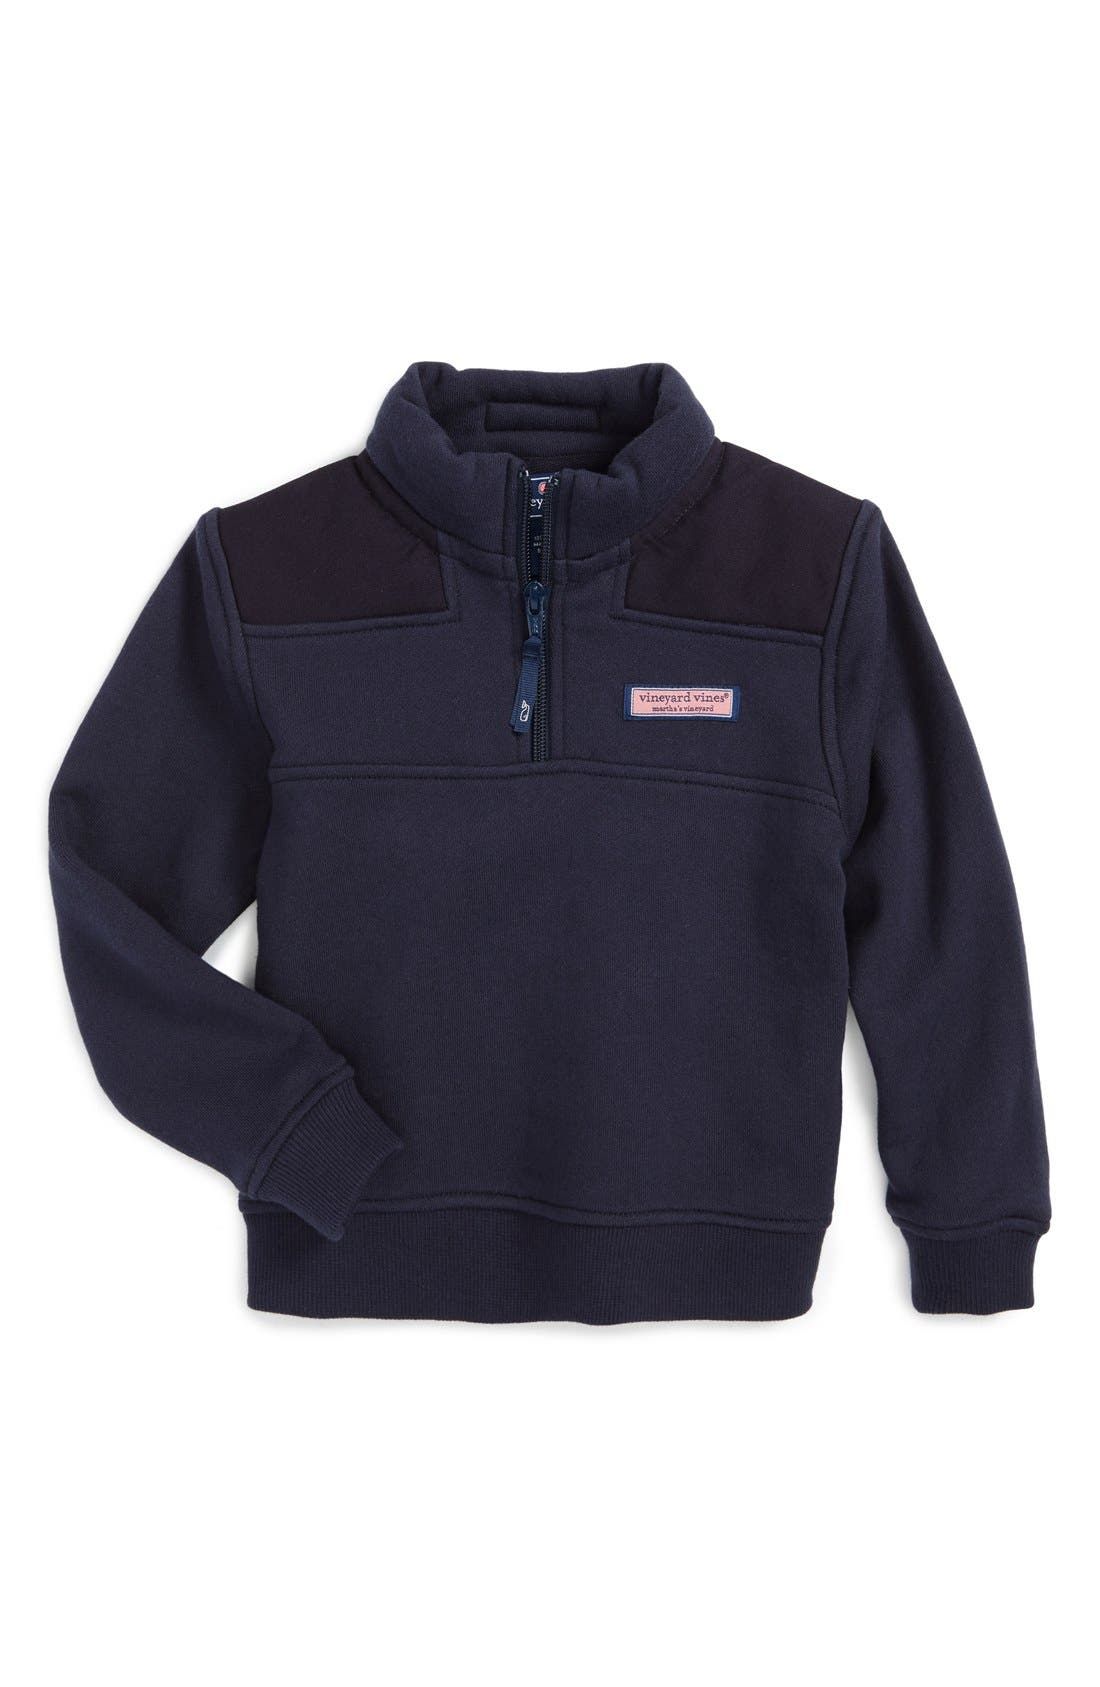 Toddler Boys Vineyard Vines Shep Quarter Zip Pullover Size 2T  Blue